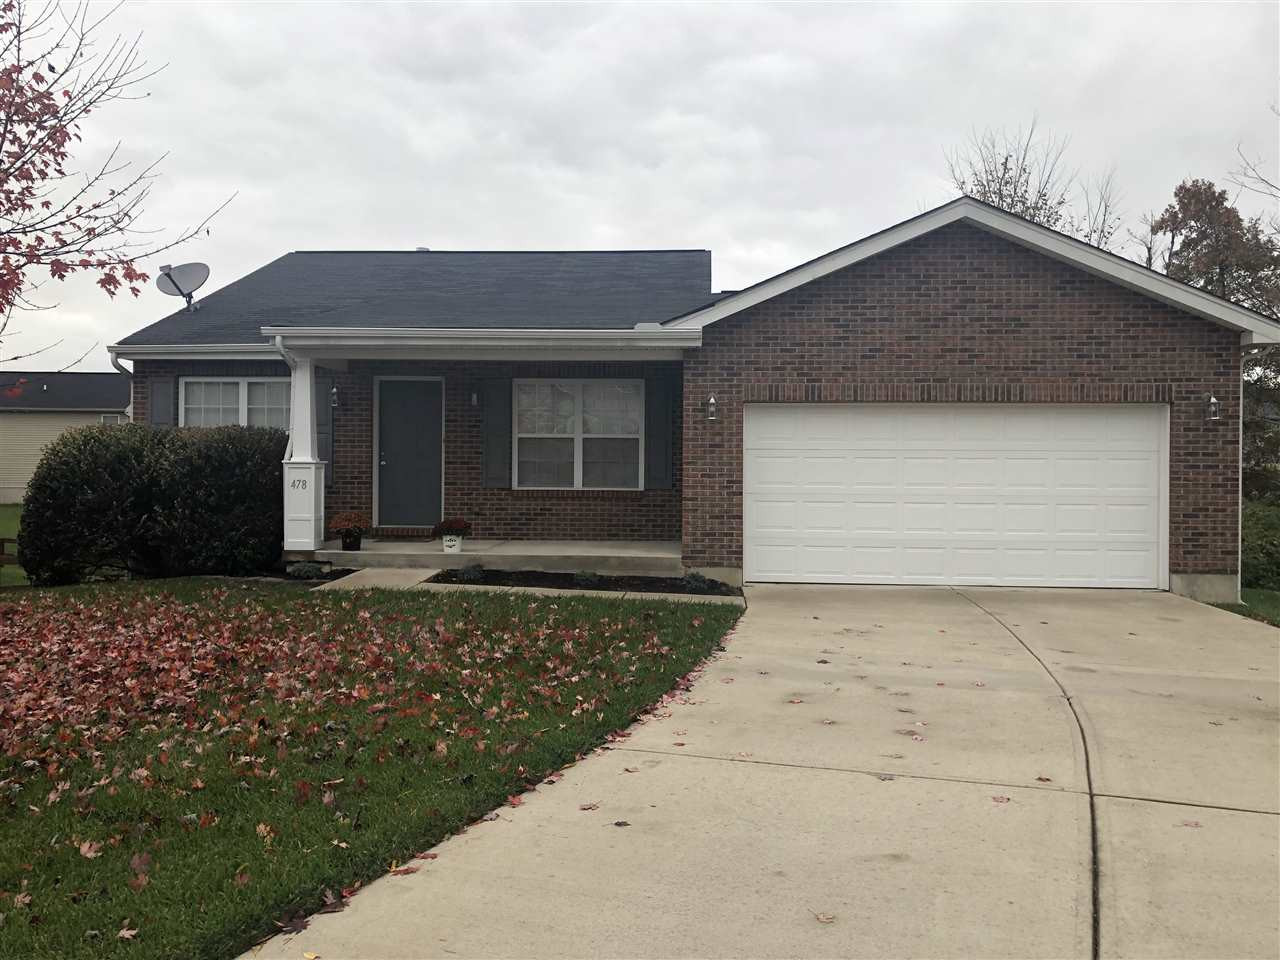 478 Colby Ct